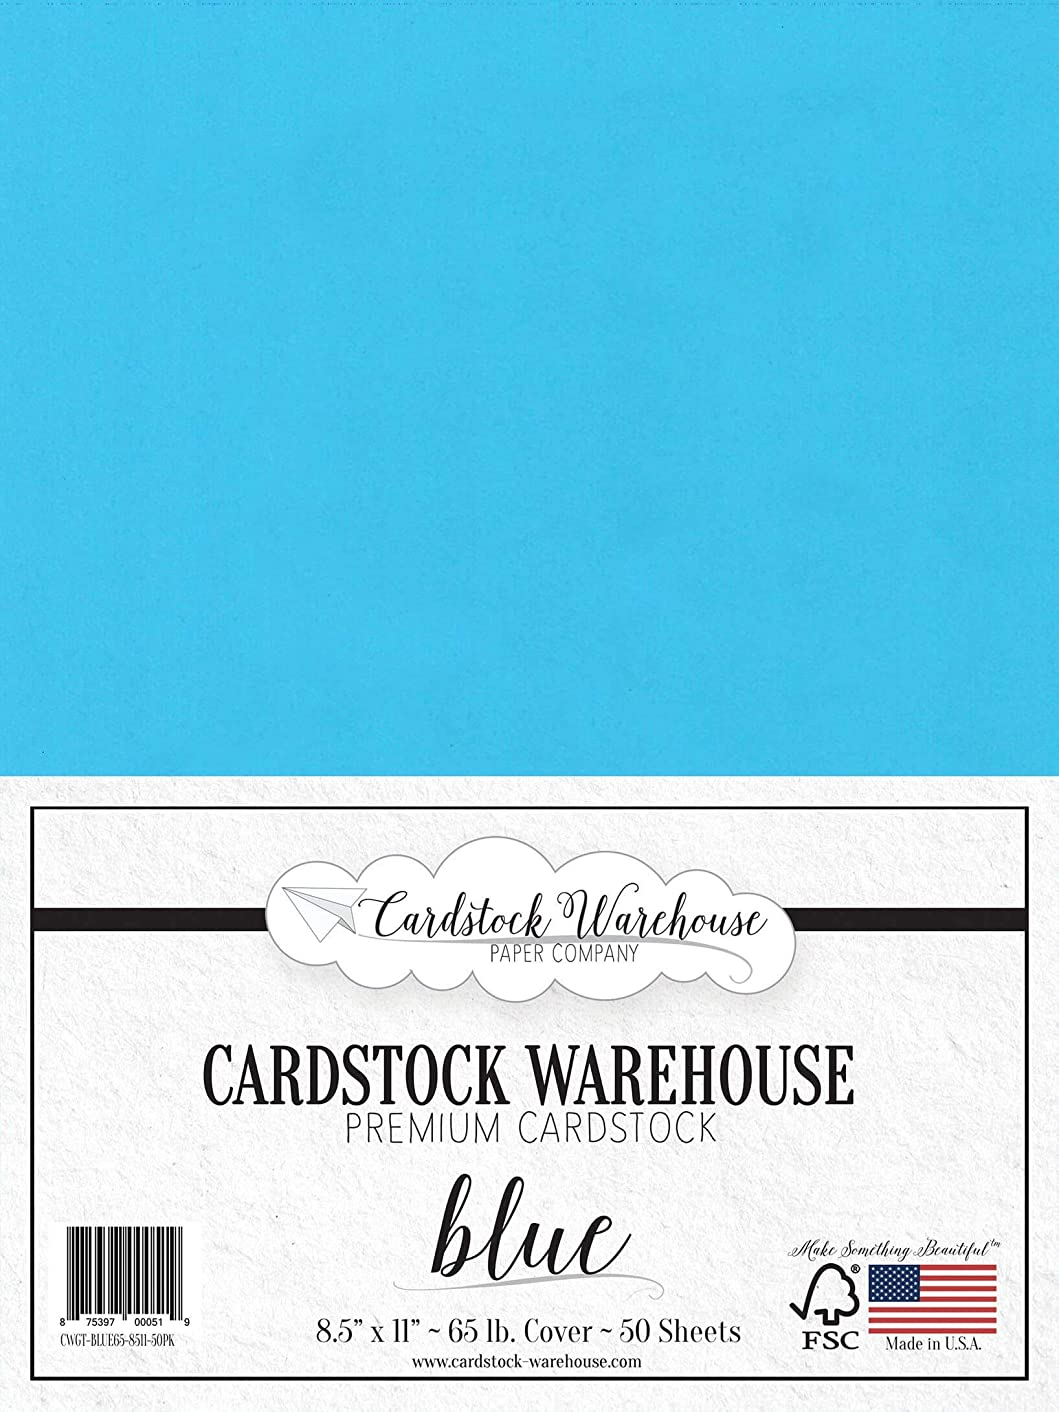 Blue Cardstock Paper - 8.5 x 11 inch - 65 lb. - 50 Sheets Premium Cover from Cardstock Warehouse